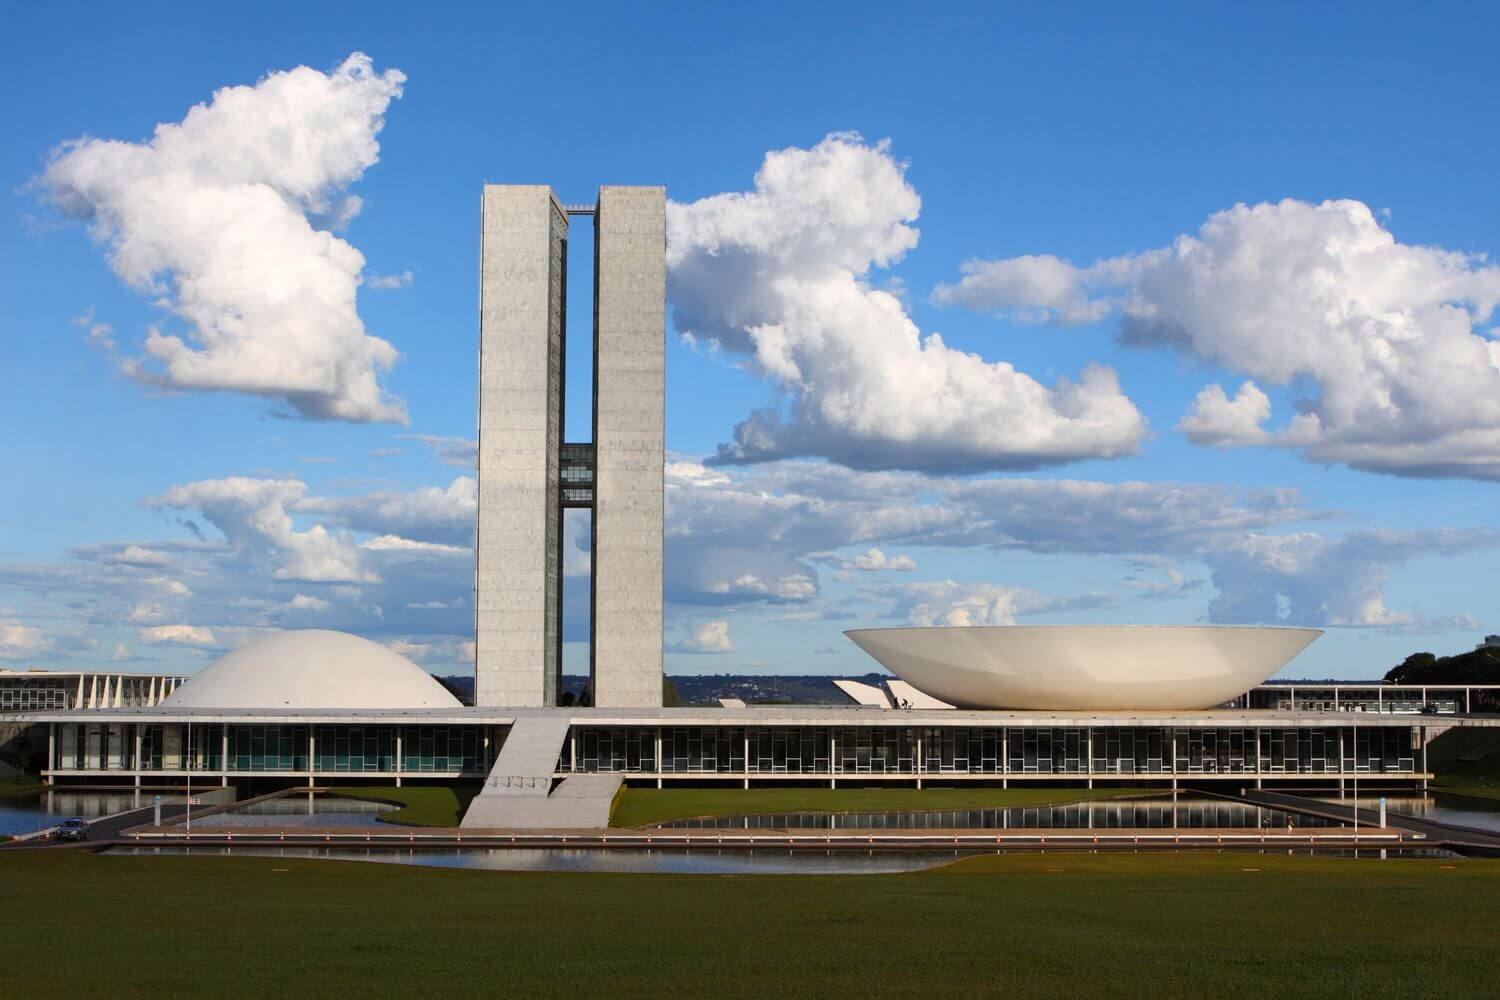 National Congress / Oscar Niemeyer